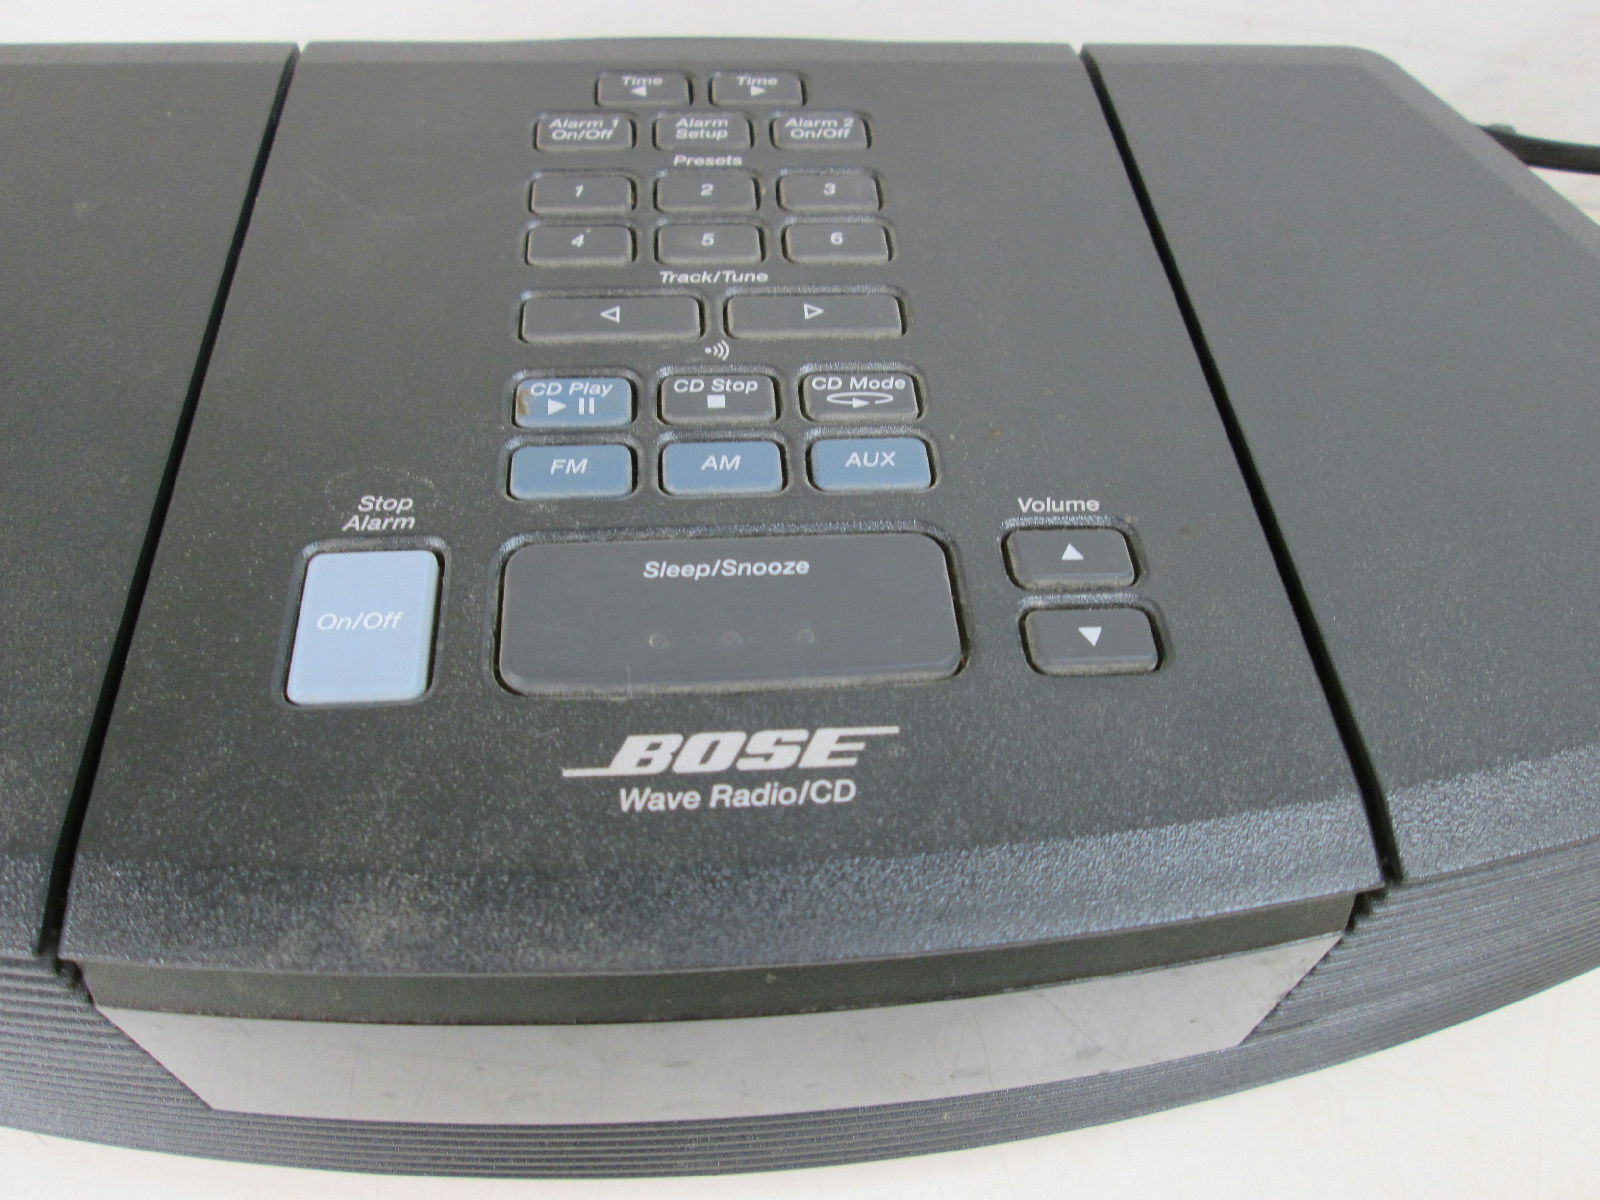 bose wave radio cd player model aw rc g1 black with remote. Black Bedroom Furniture Sets. Home Design Ideas